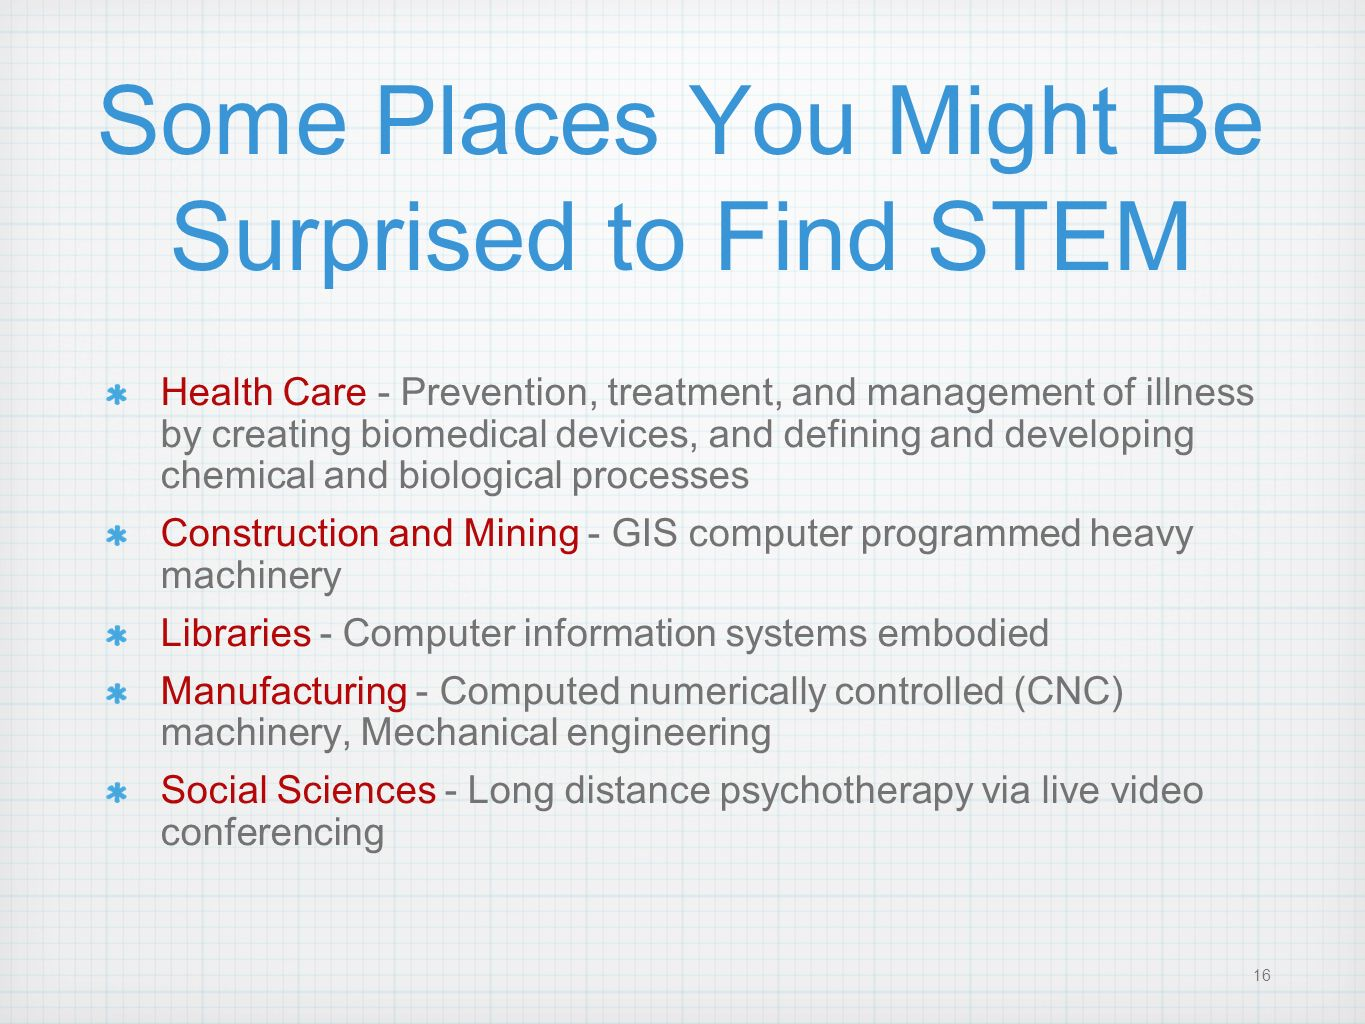 Some Places You Might Be Surprised to Find STEM